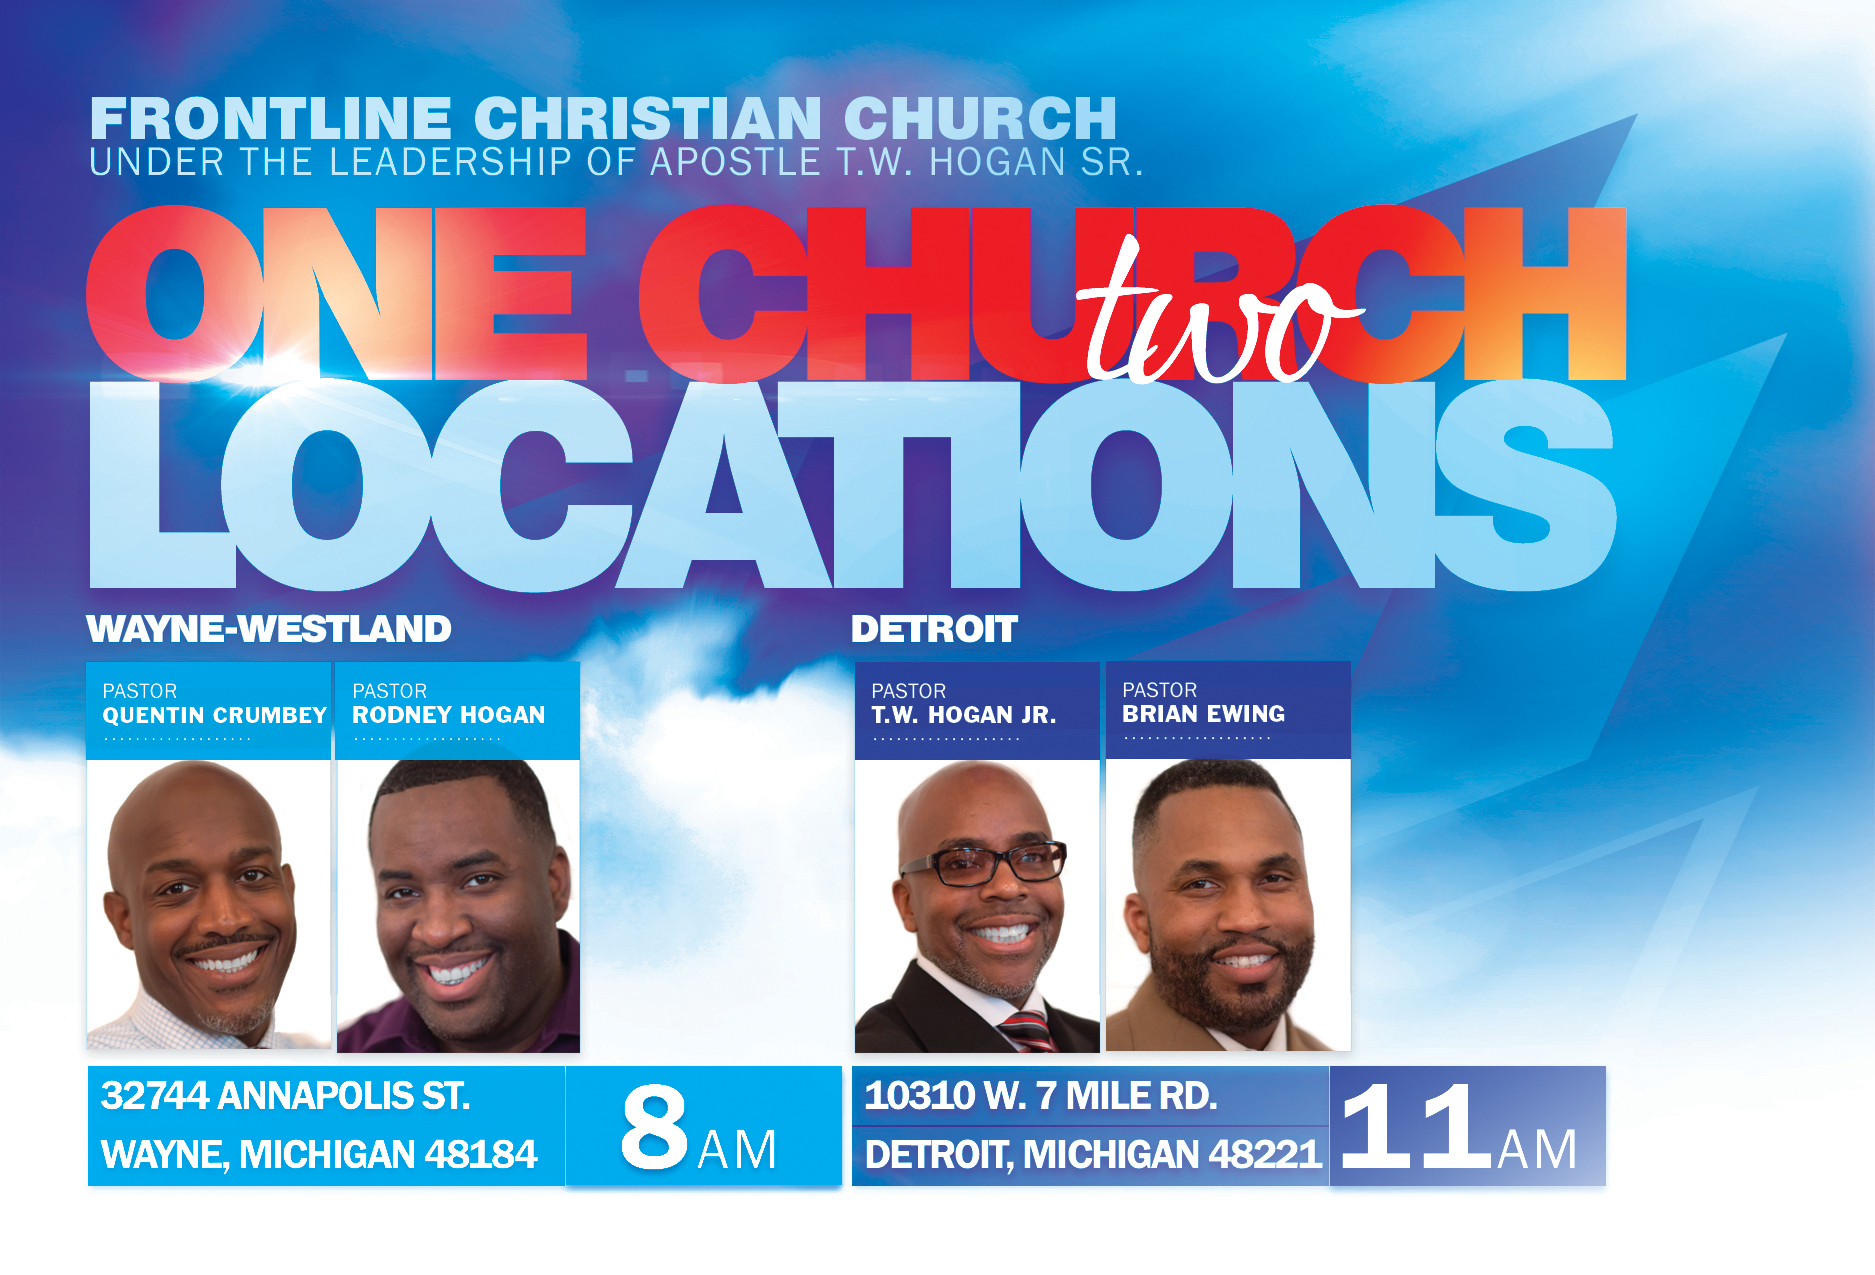 One Church Two Locations